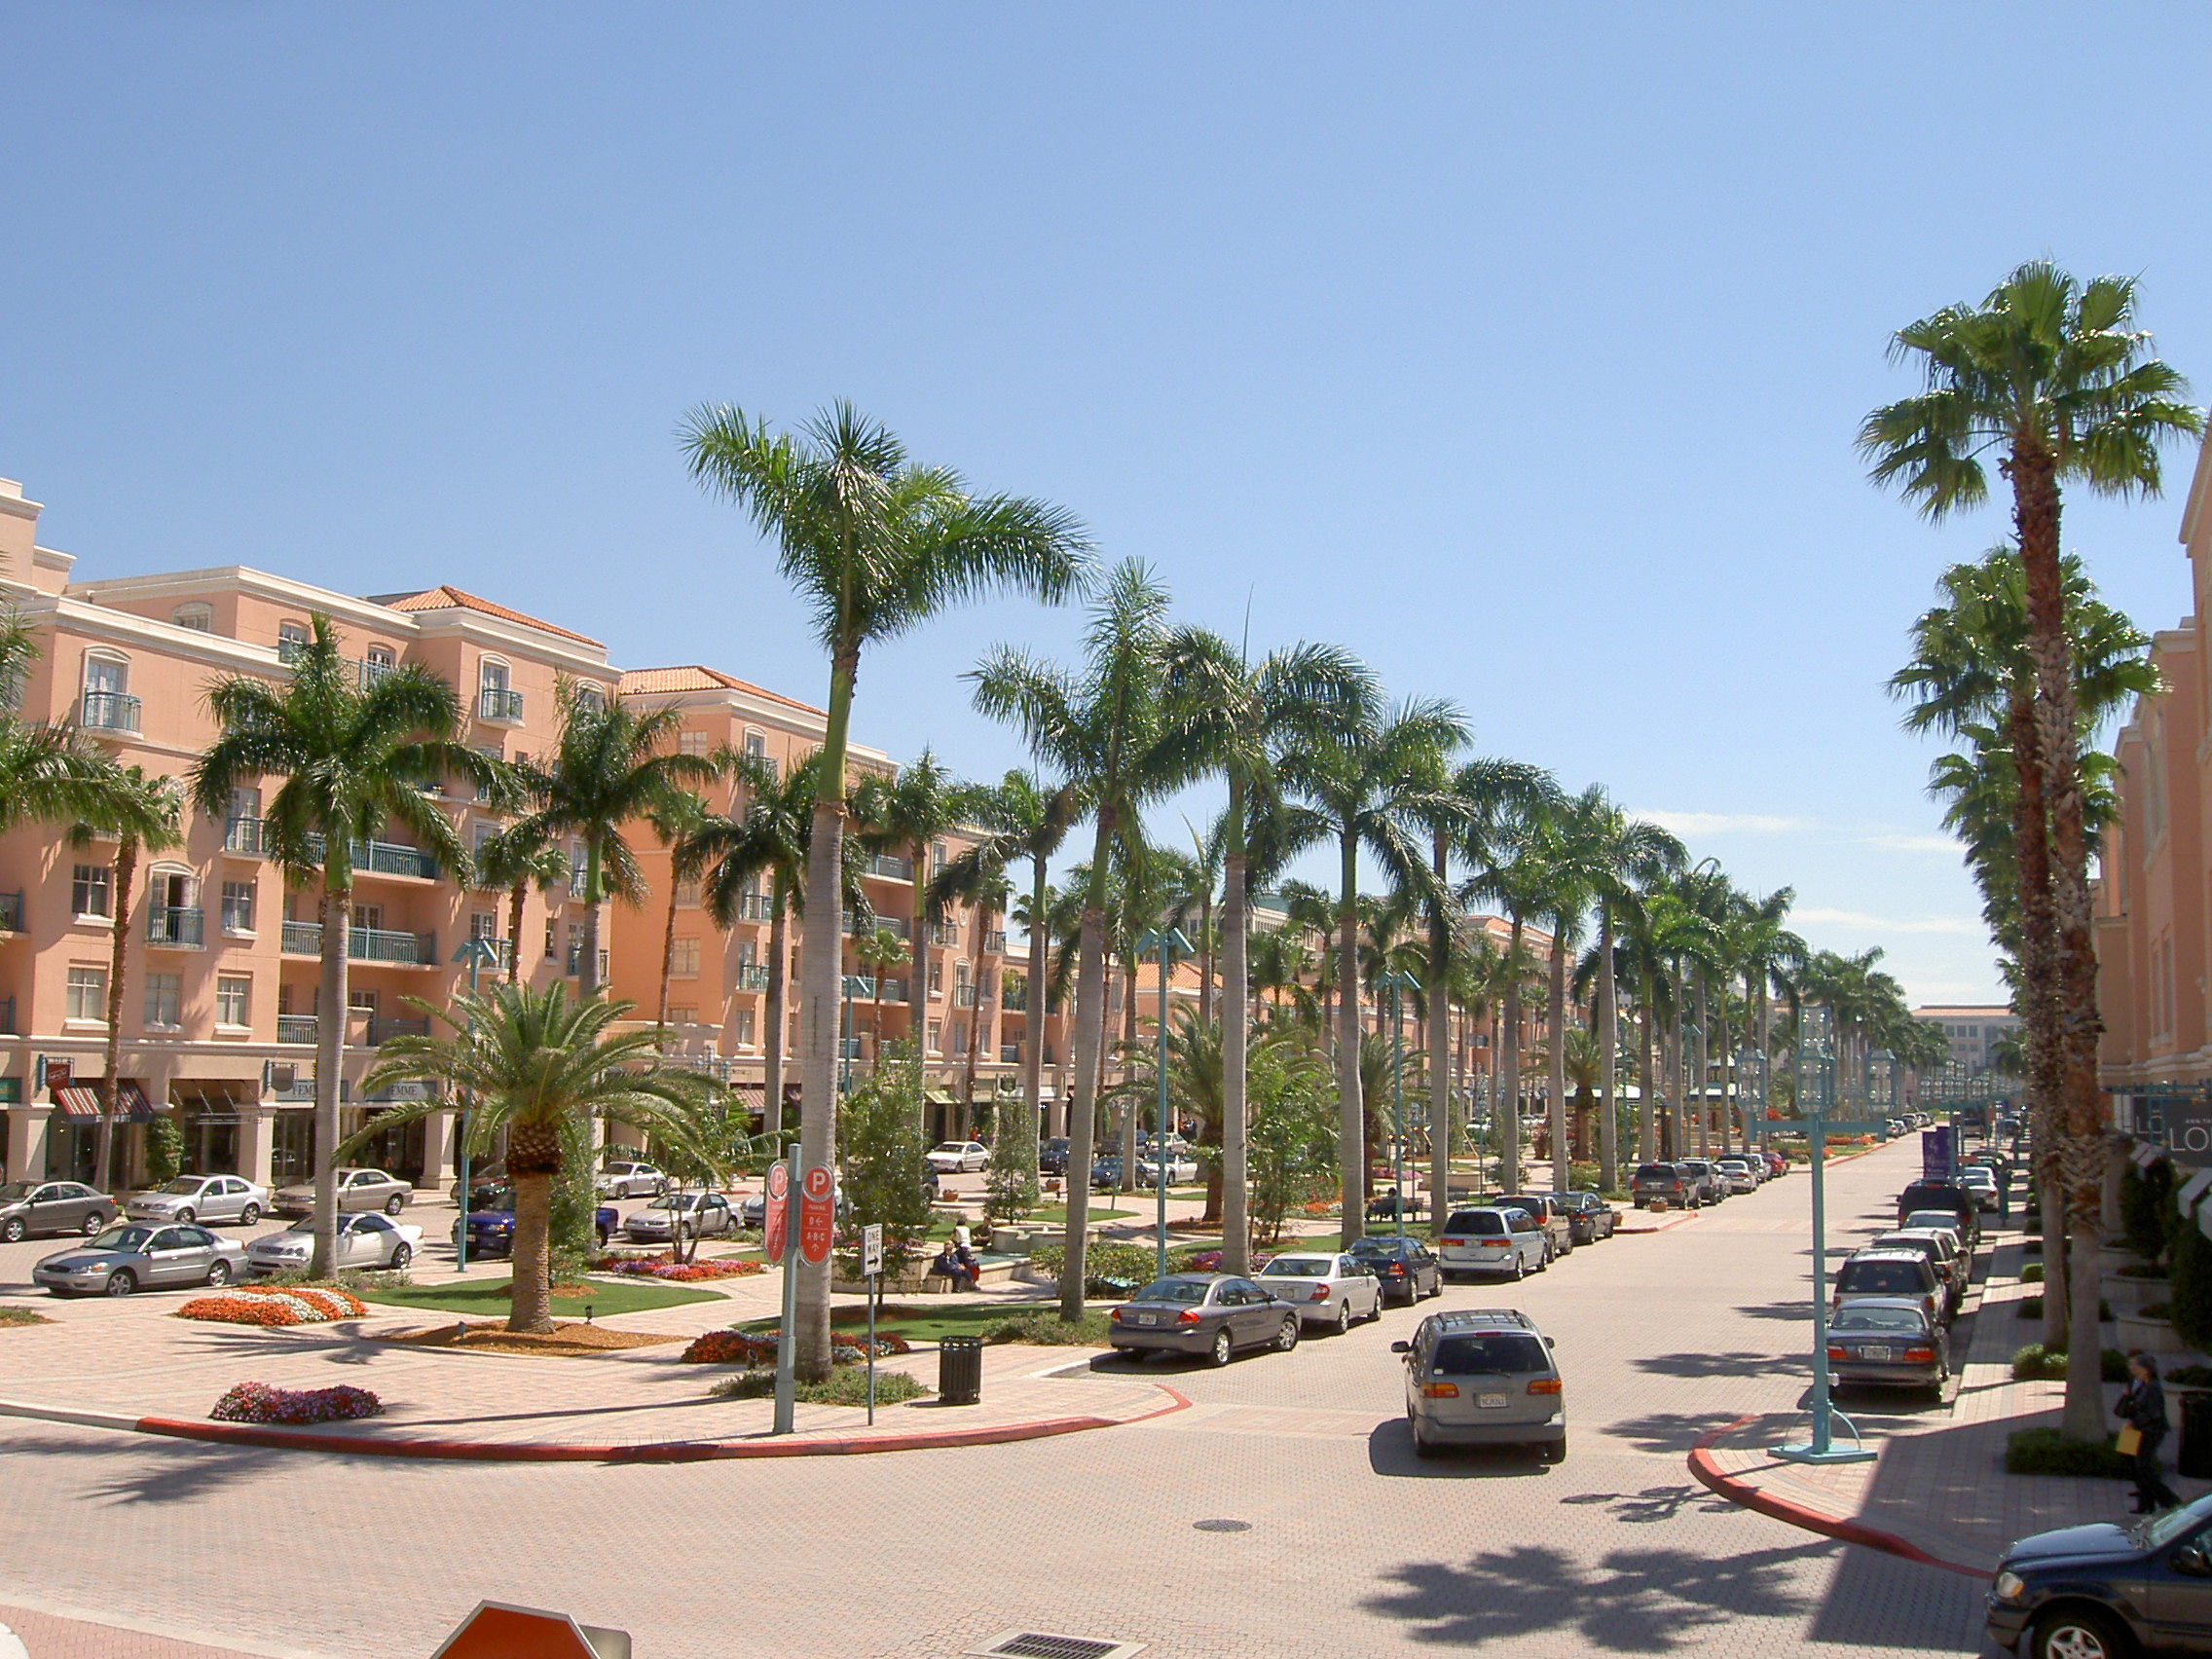 Boca Raton is home to the second largest number of nursing homes in Palm Beach County